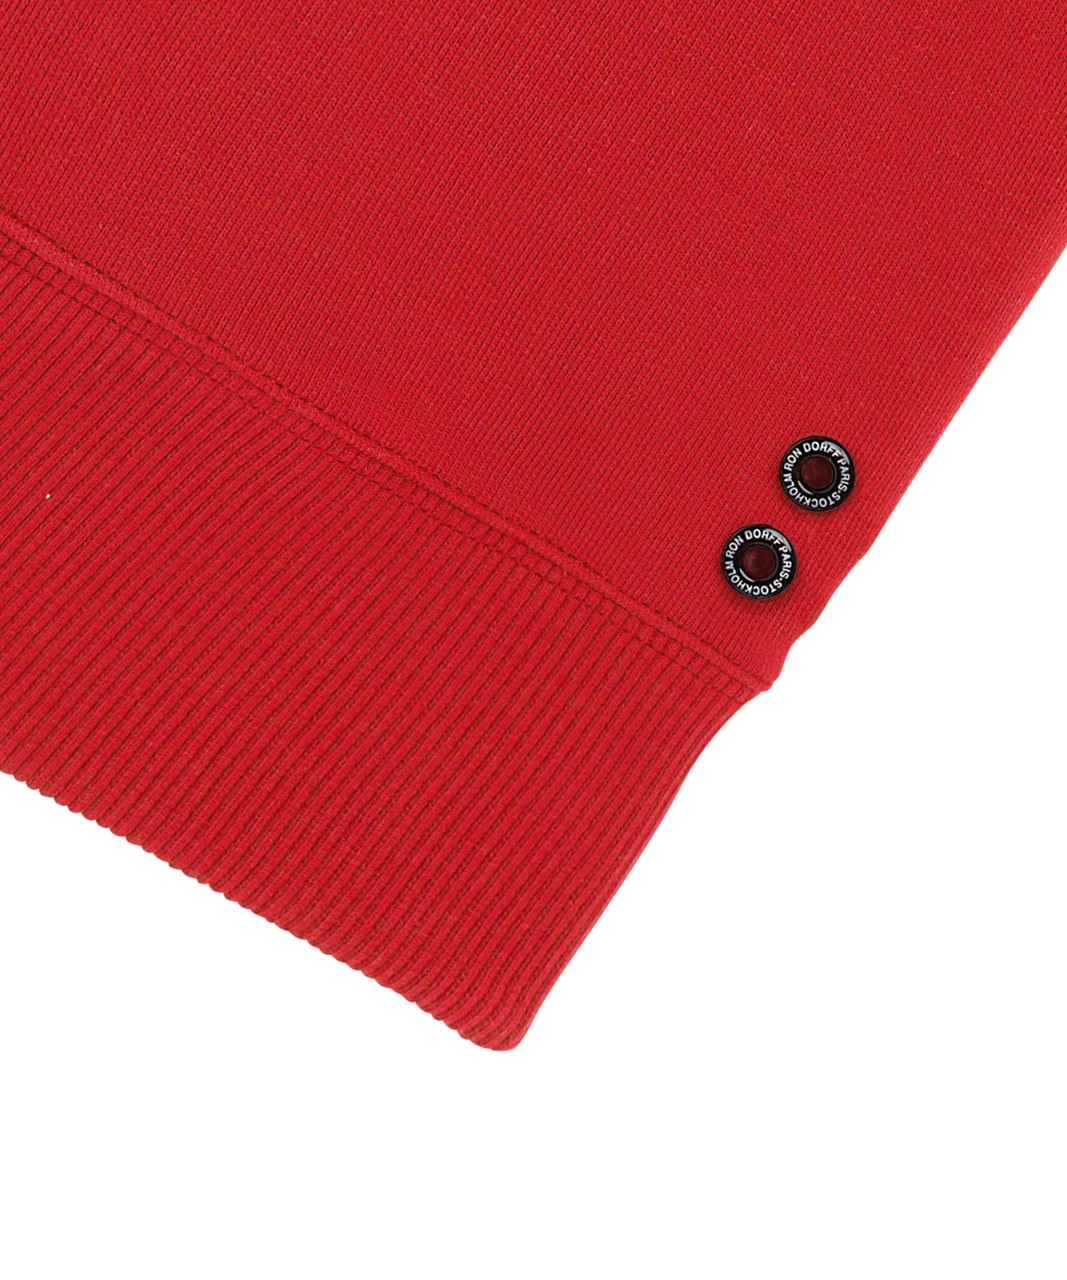 Ron Dorff Short-sleeved sweatshirt Puff Eyelet in Mars Red